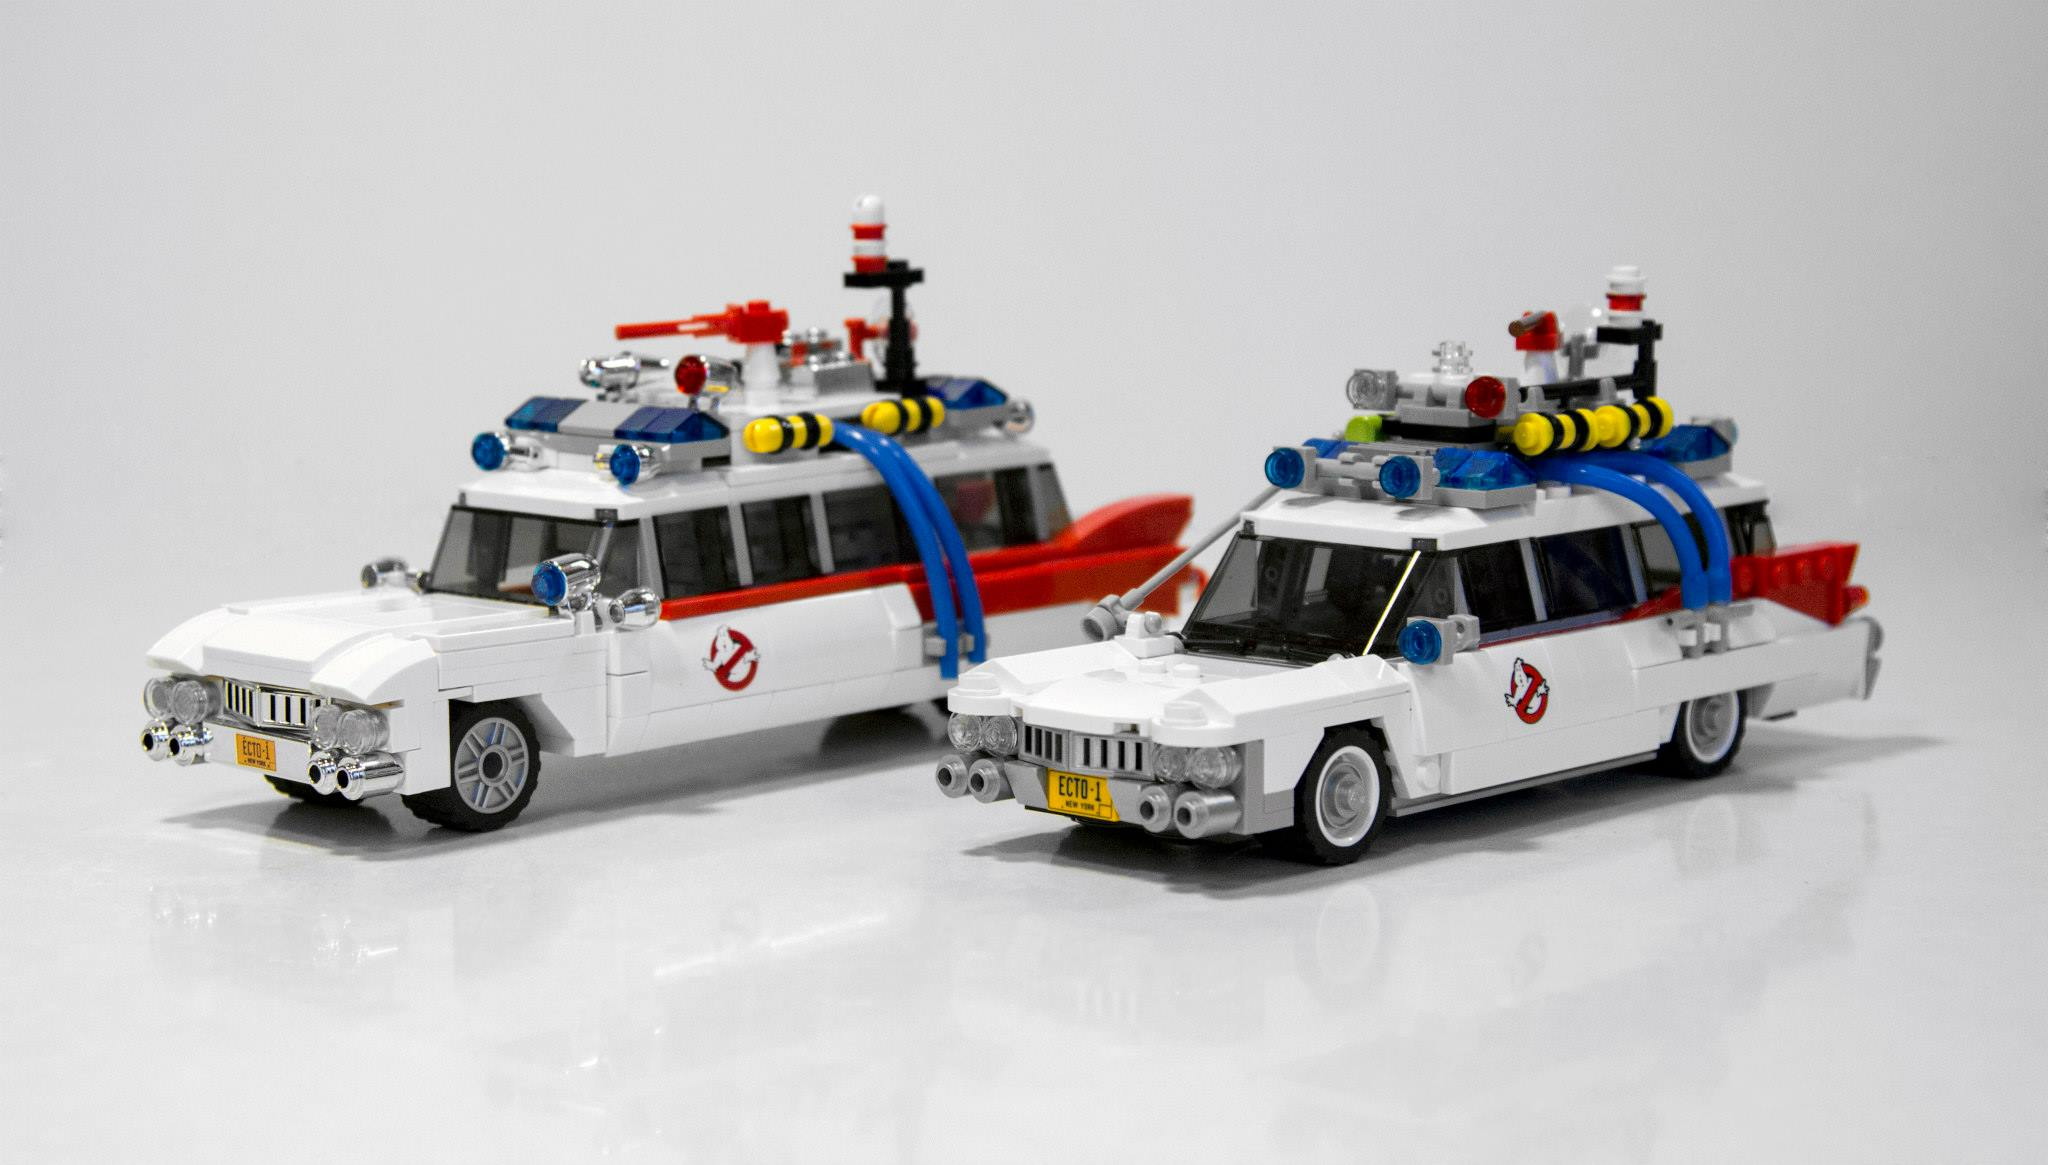 lego cuusoo ghostbusters ecto 1 box images the toyark news. Black Bedroom Furniture Sets. Home Design Ideas